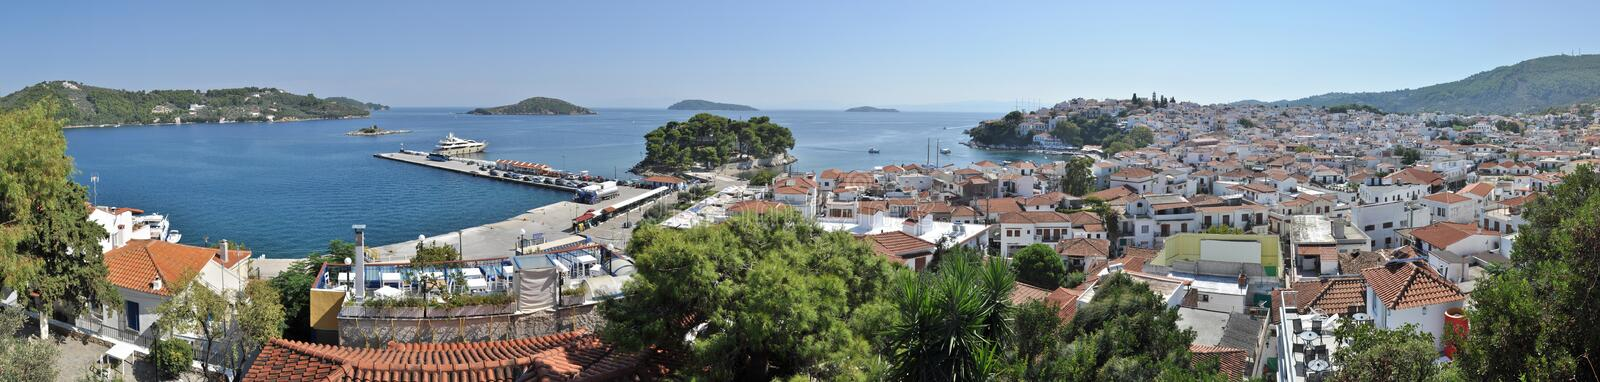 Skiathos panorama. The island of Skiathos is one of the major tourist attractions of the Aegean sea. Its impressive beaches, lush forests and emerald green sea royalty free stock image